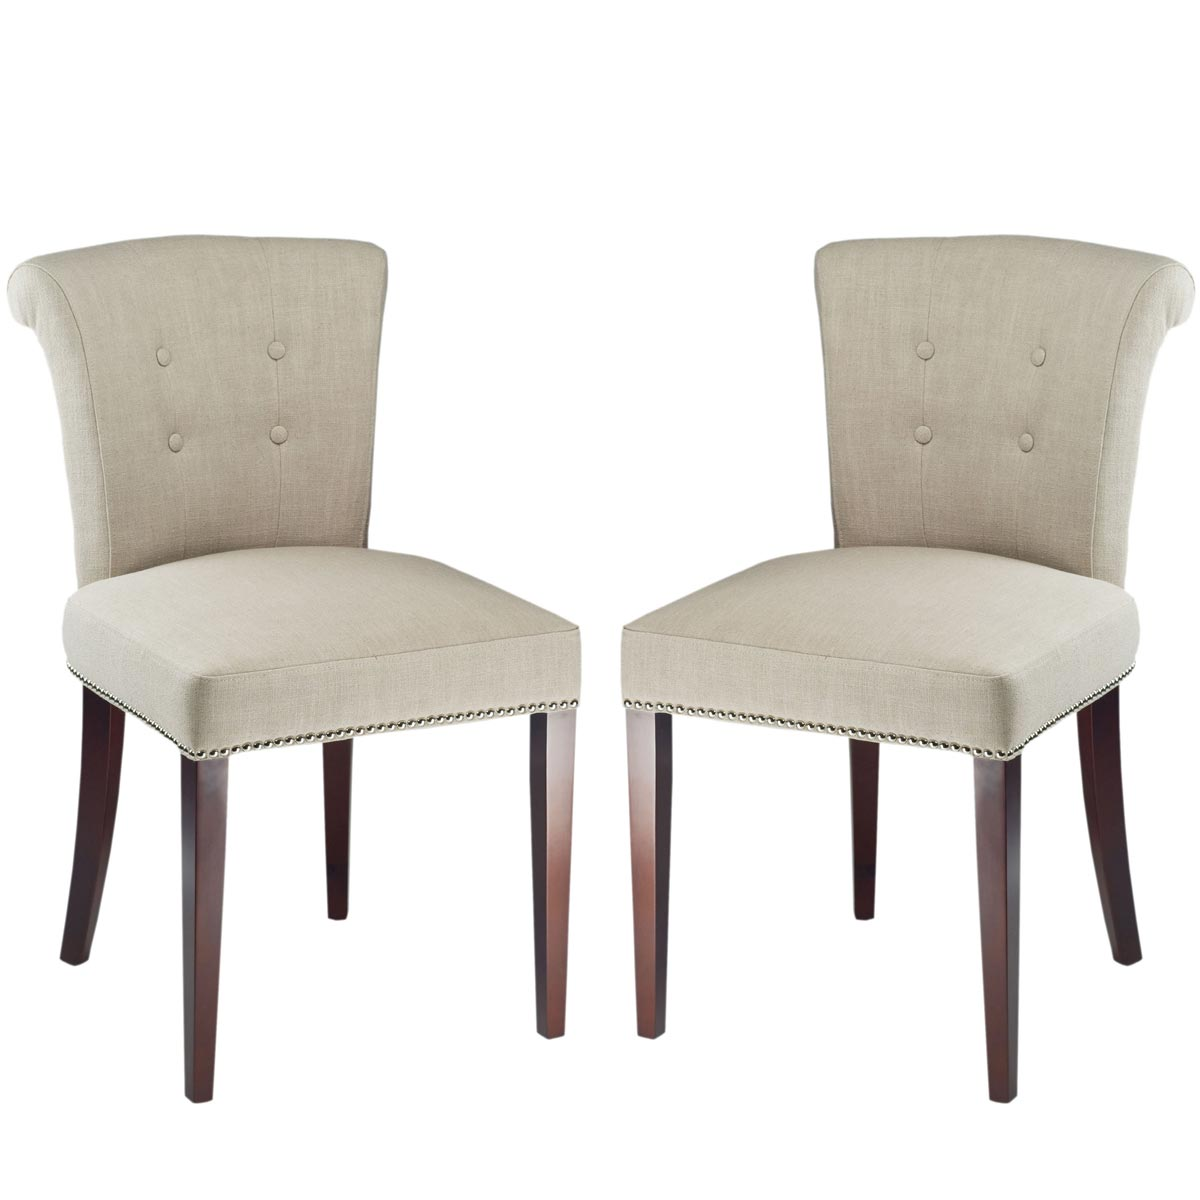 Safavieh Furniture: MCR4507A-SET2 Dining Chairs